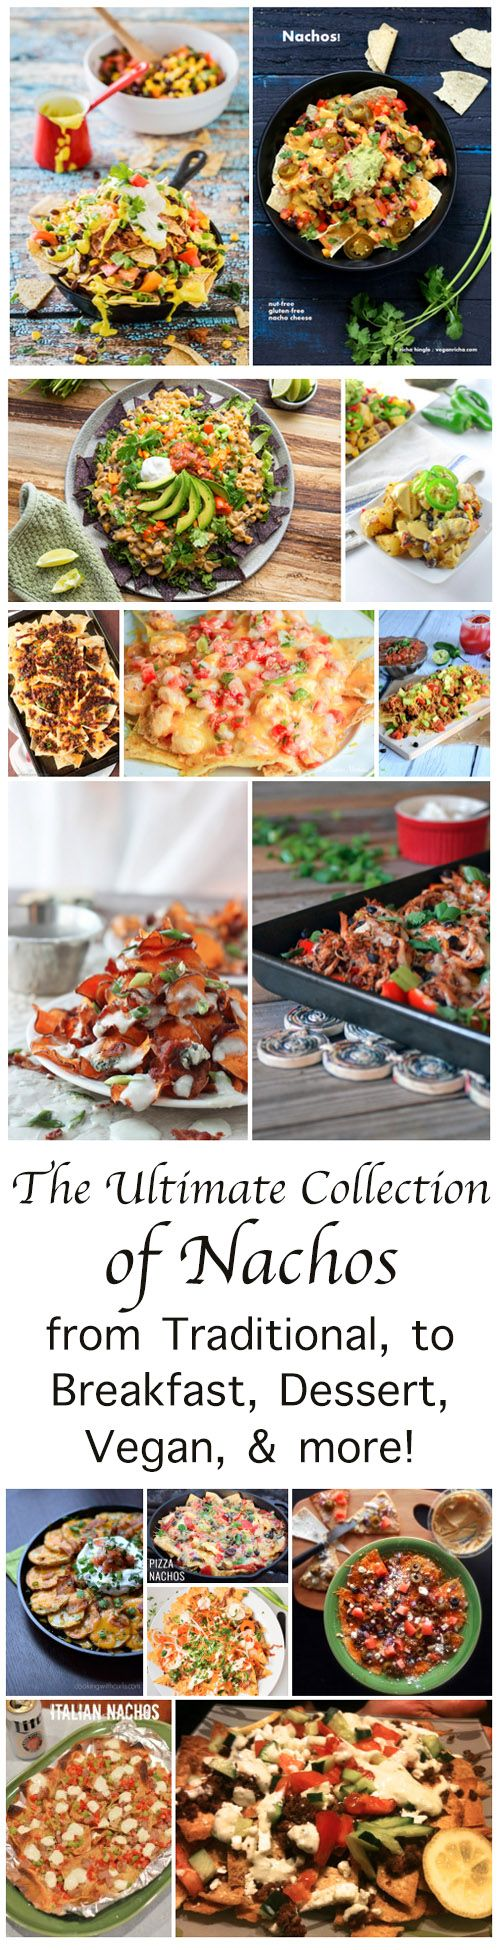 Nachos! The Ultimate Collection of the best recipes around the internet!  Celebrate Cinco de Mayo the right way! A collection of fabulous dishes, from breakfast to dessert, some international, and vegan ones.